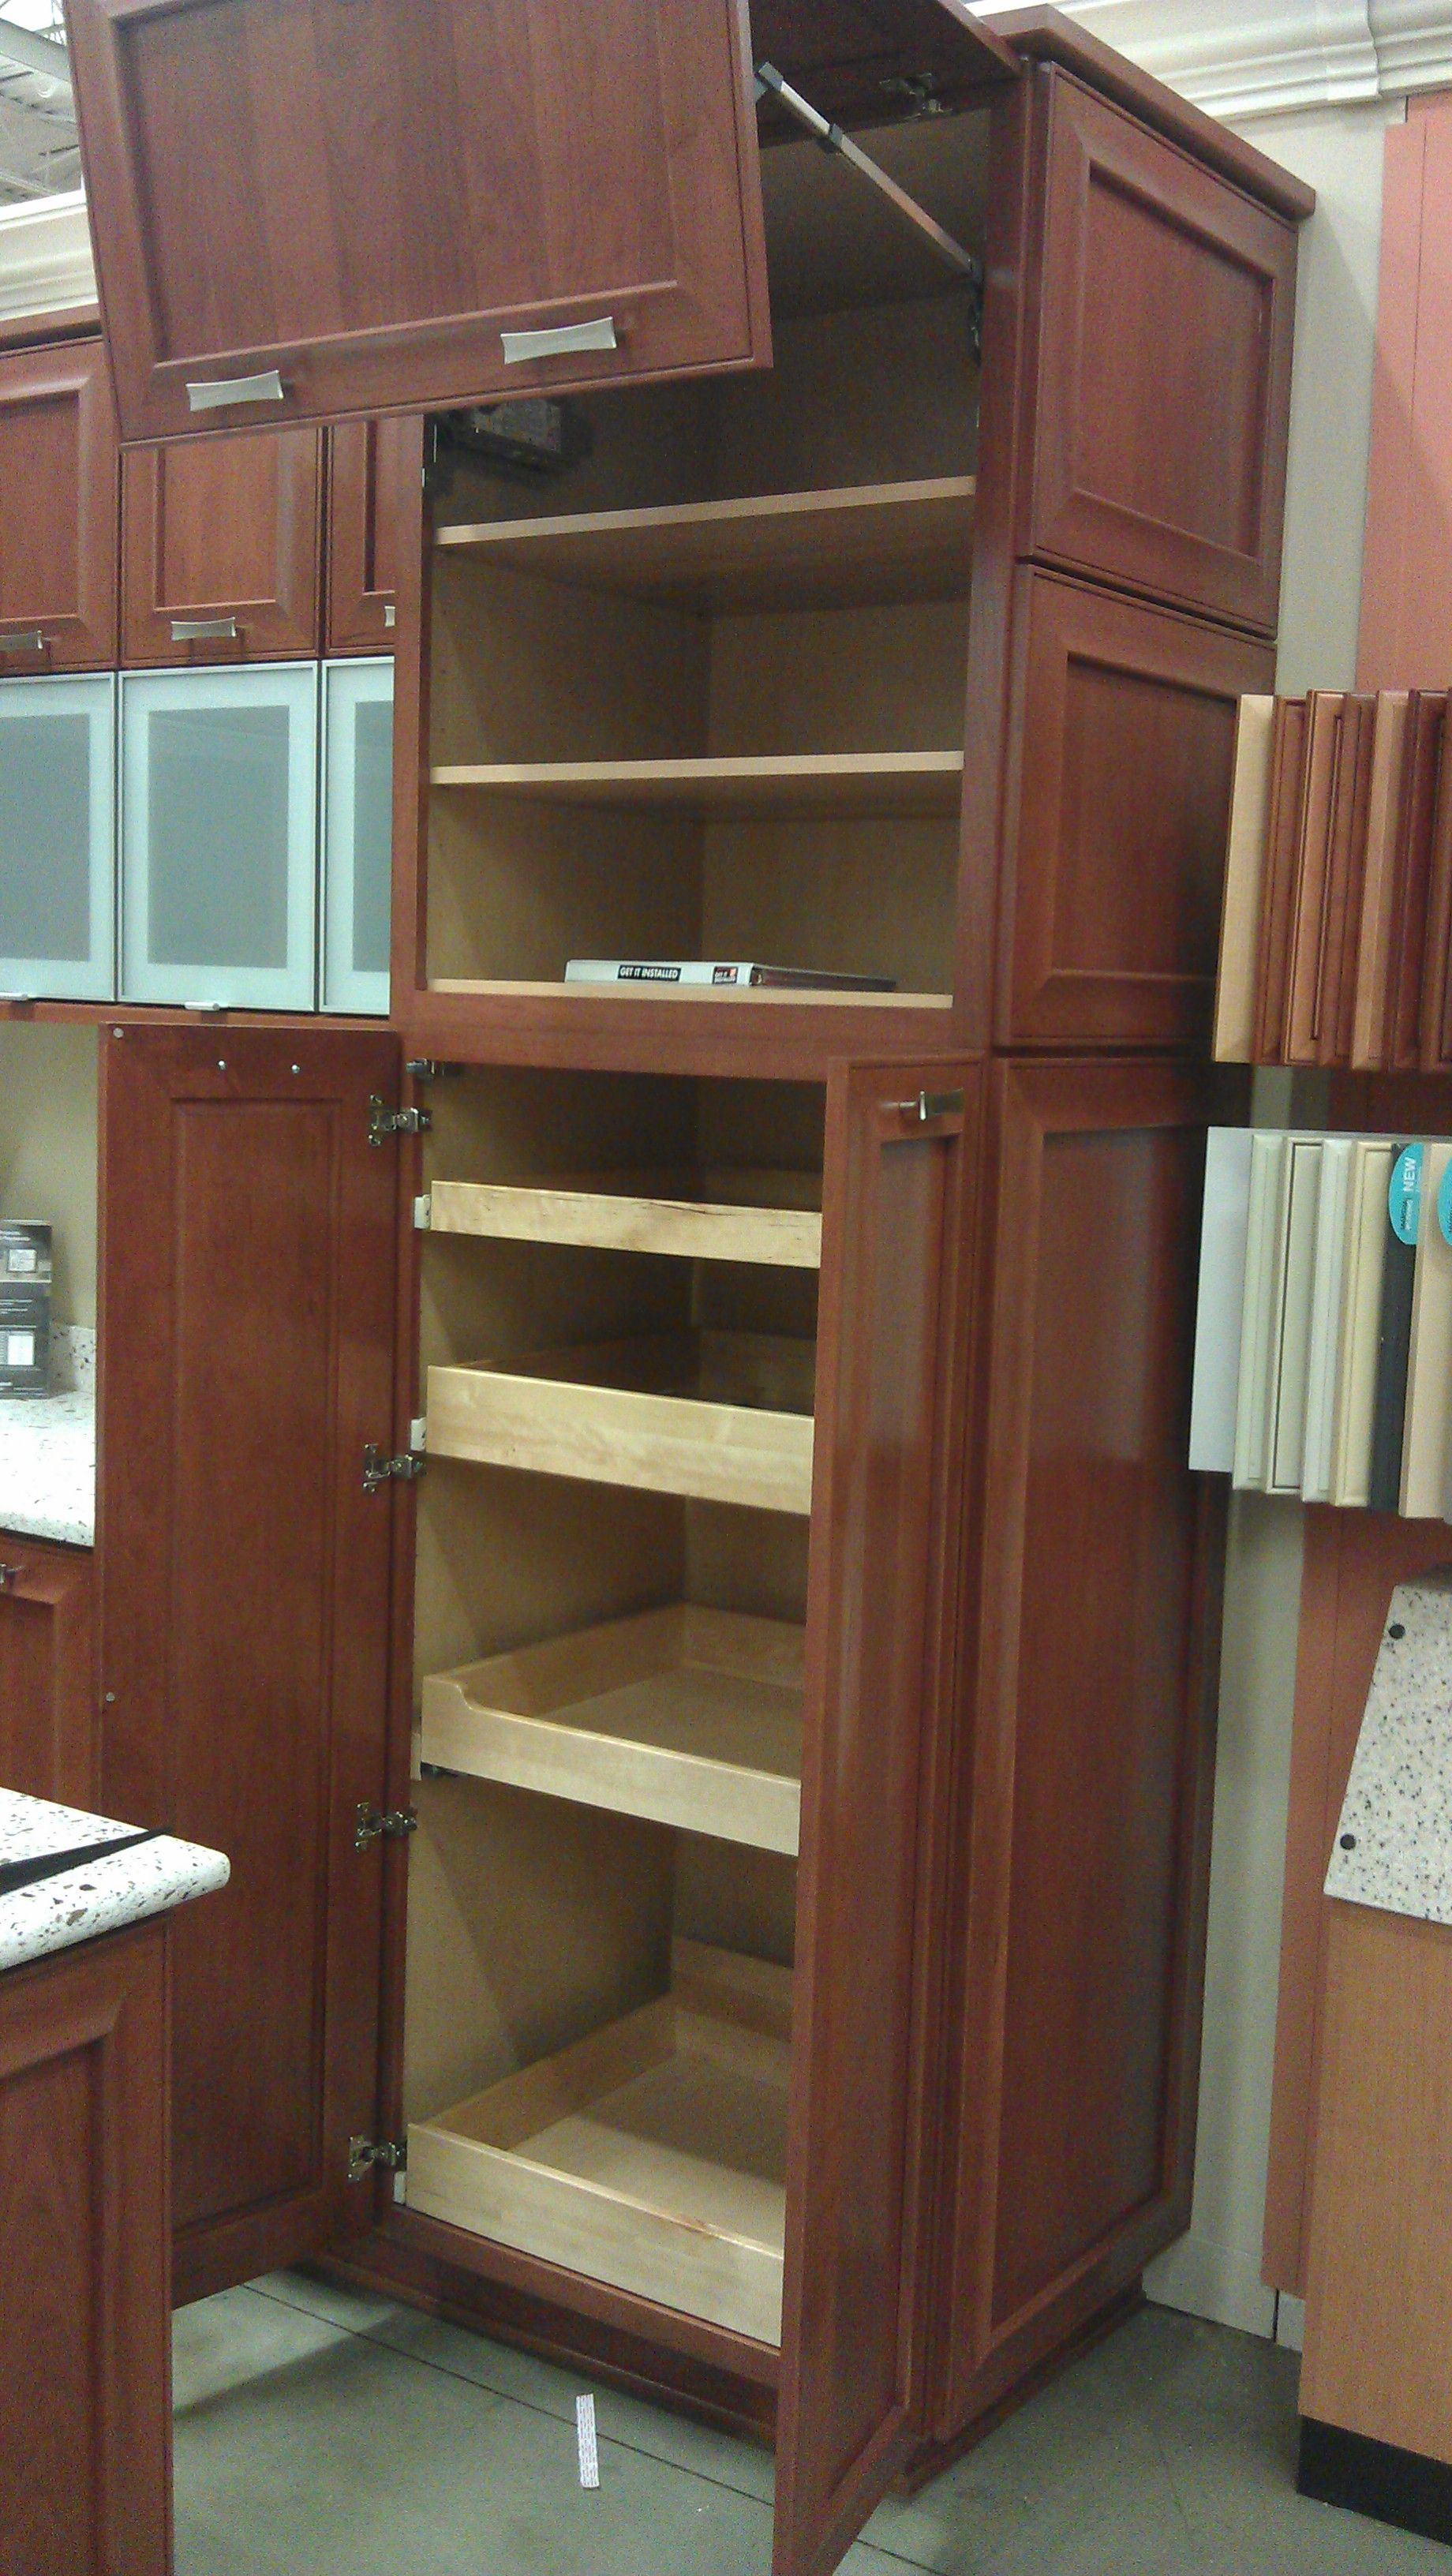 Kitchen Cabinets Slide Out Shelves Kitchen Cabinets Pull Out Shelves New House Pinterest